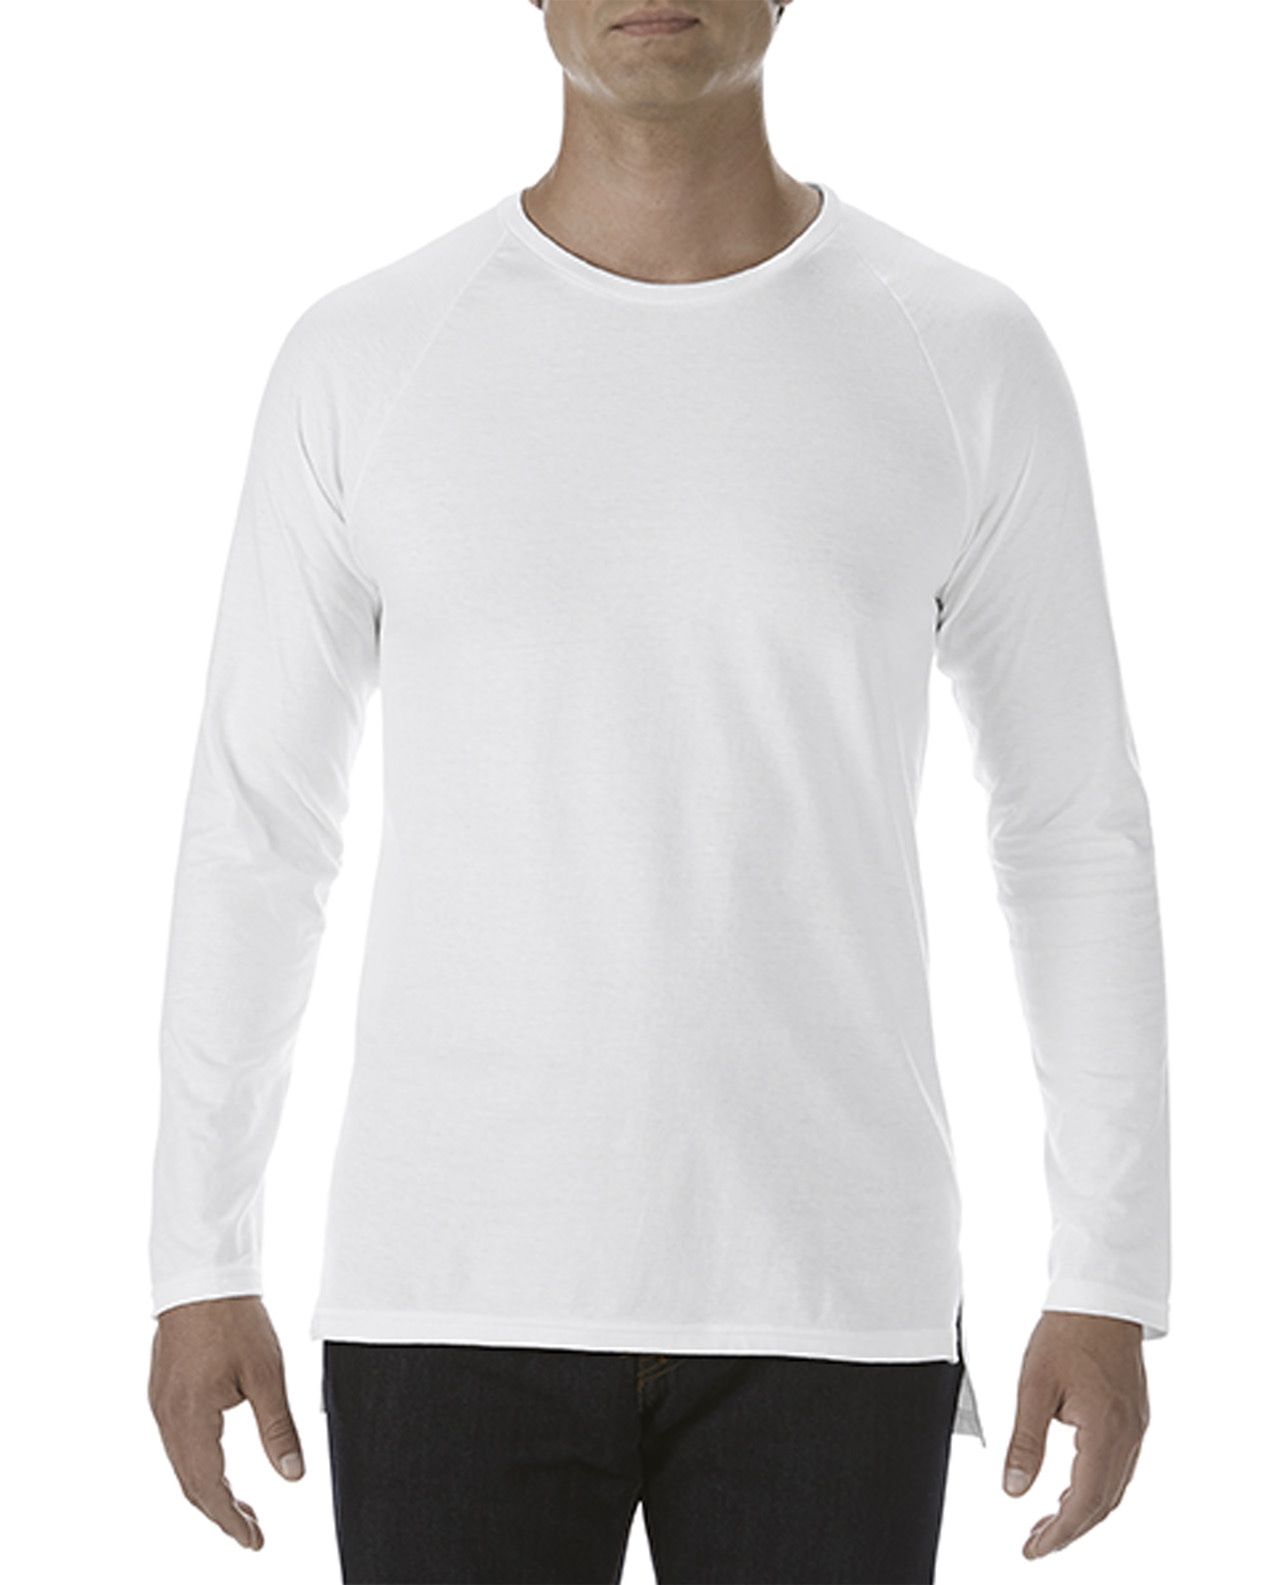 Anvil Adult Long & Lean Long Sleeve Tee - White